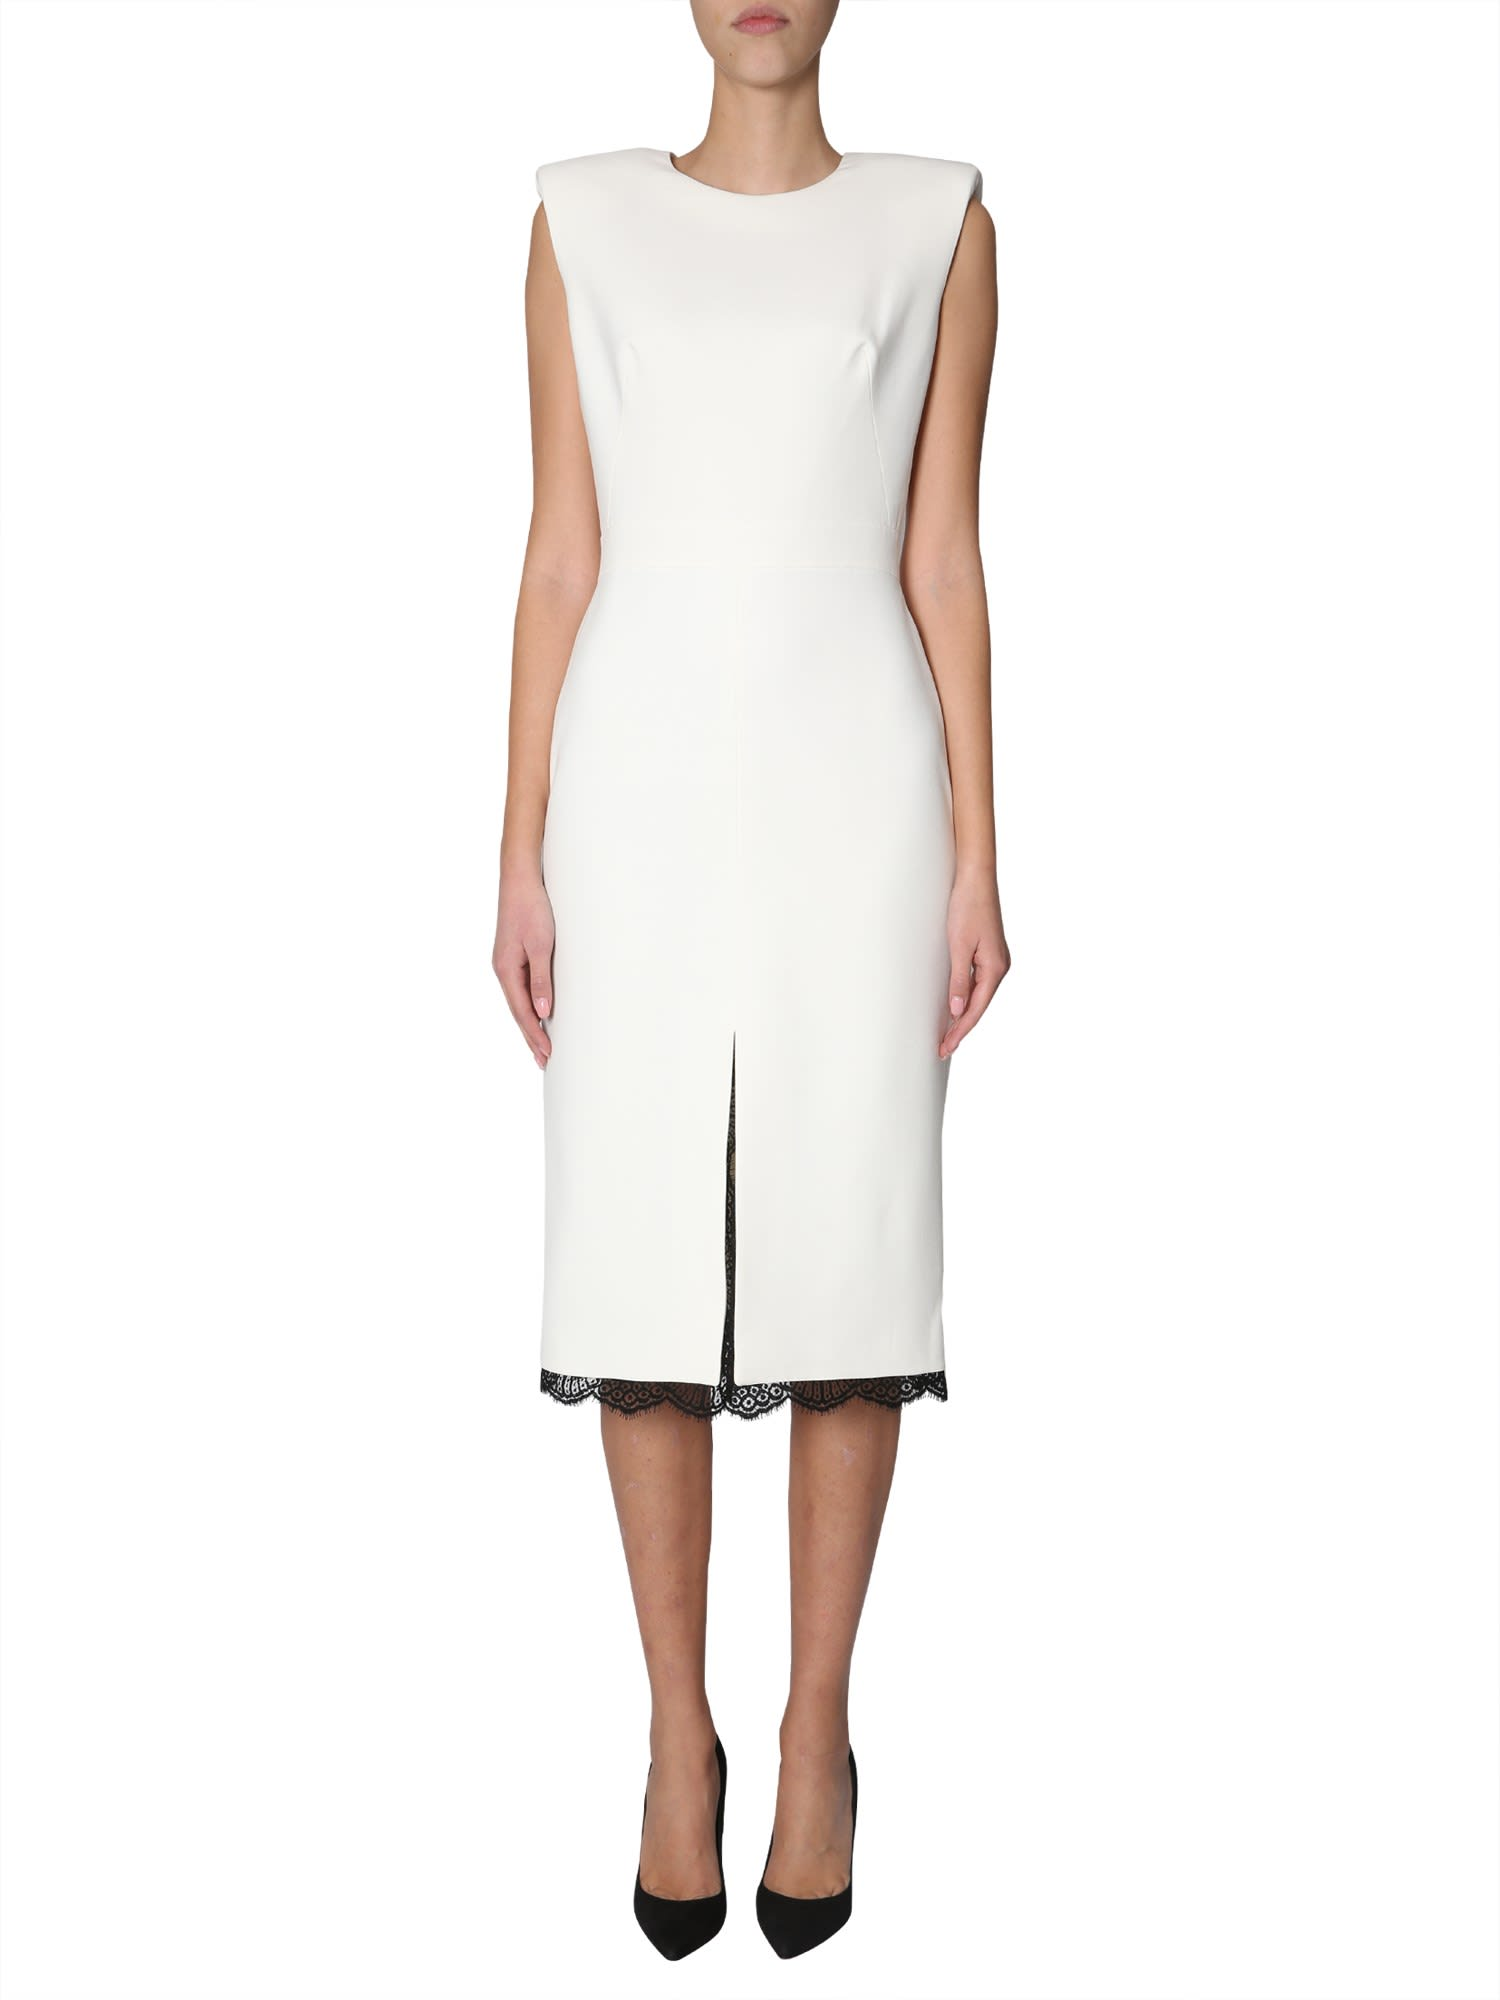 Alexander McQueen Sleeveless Dress